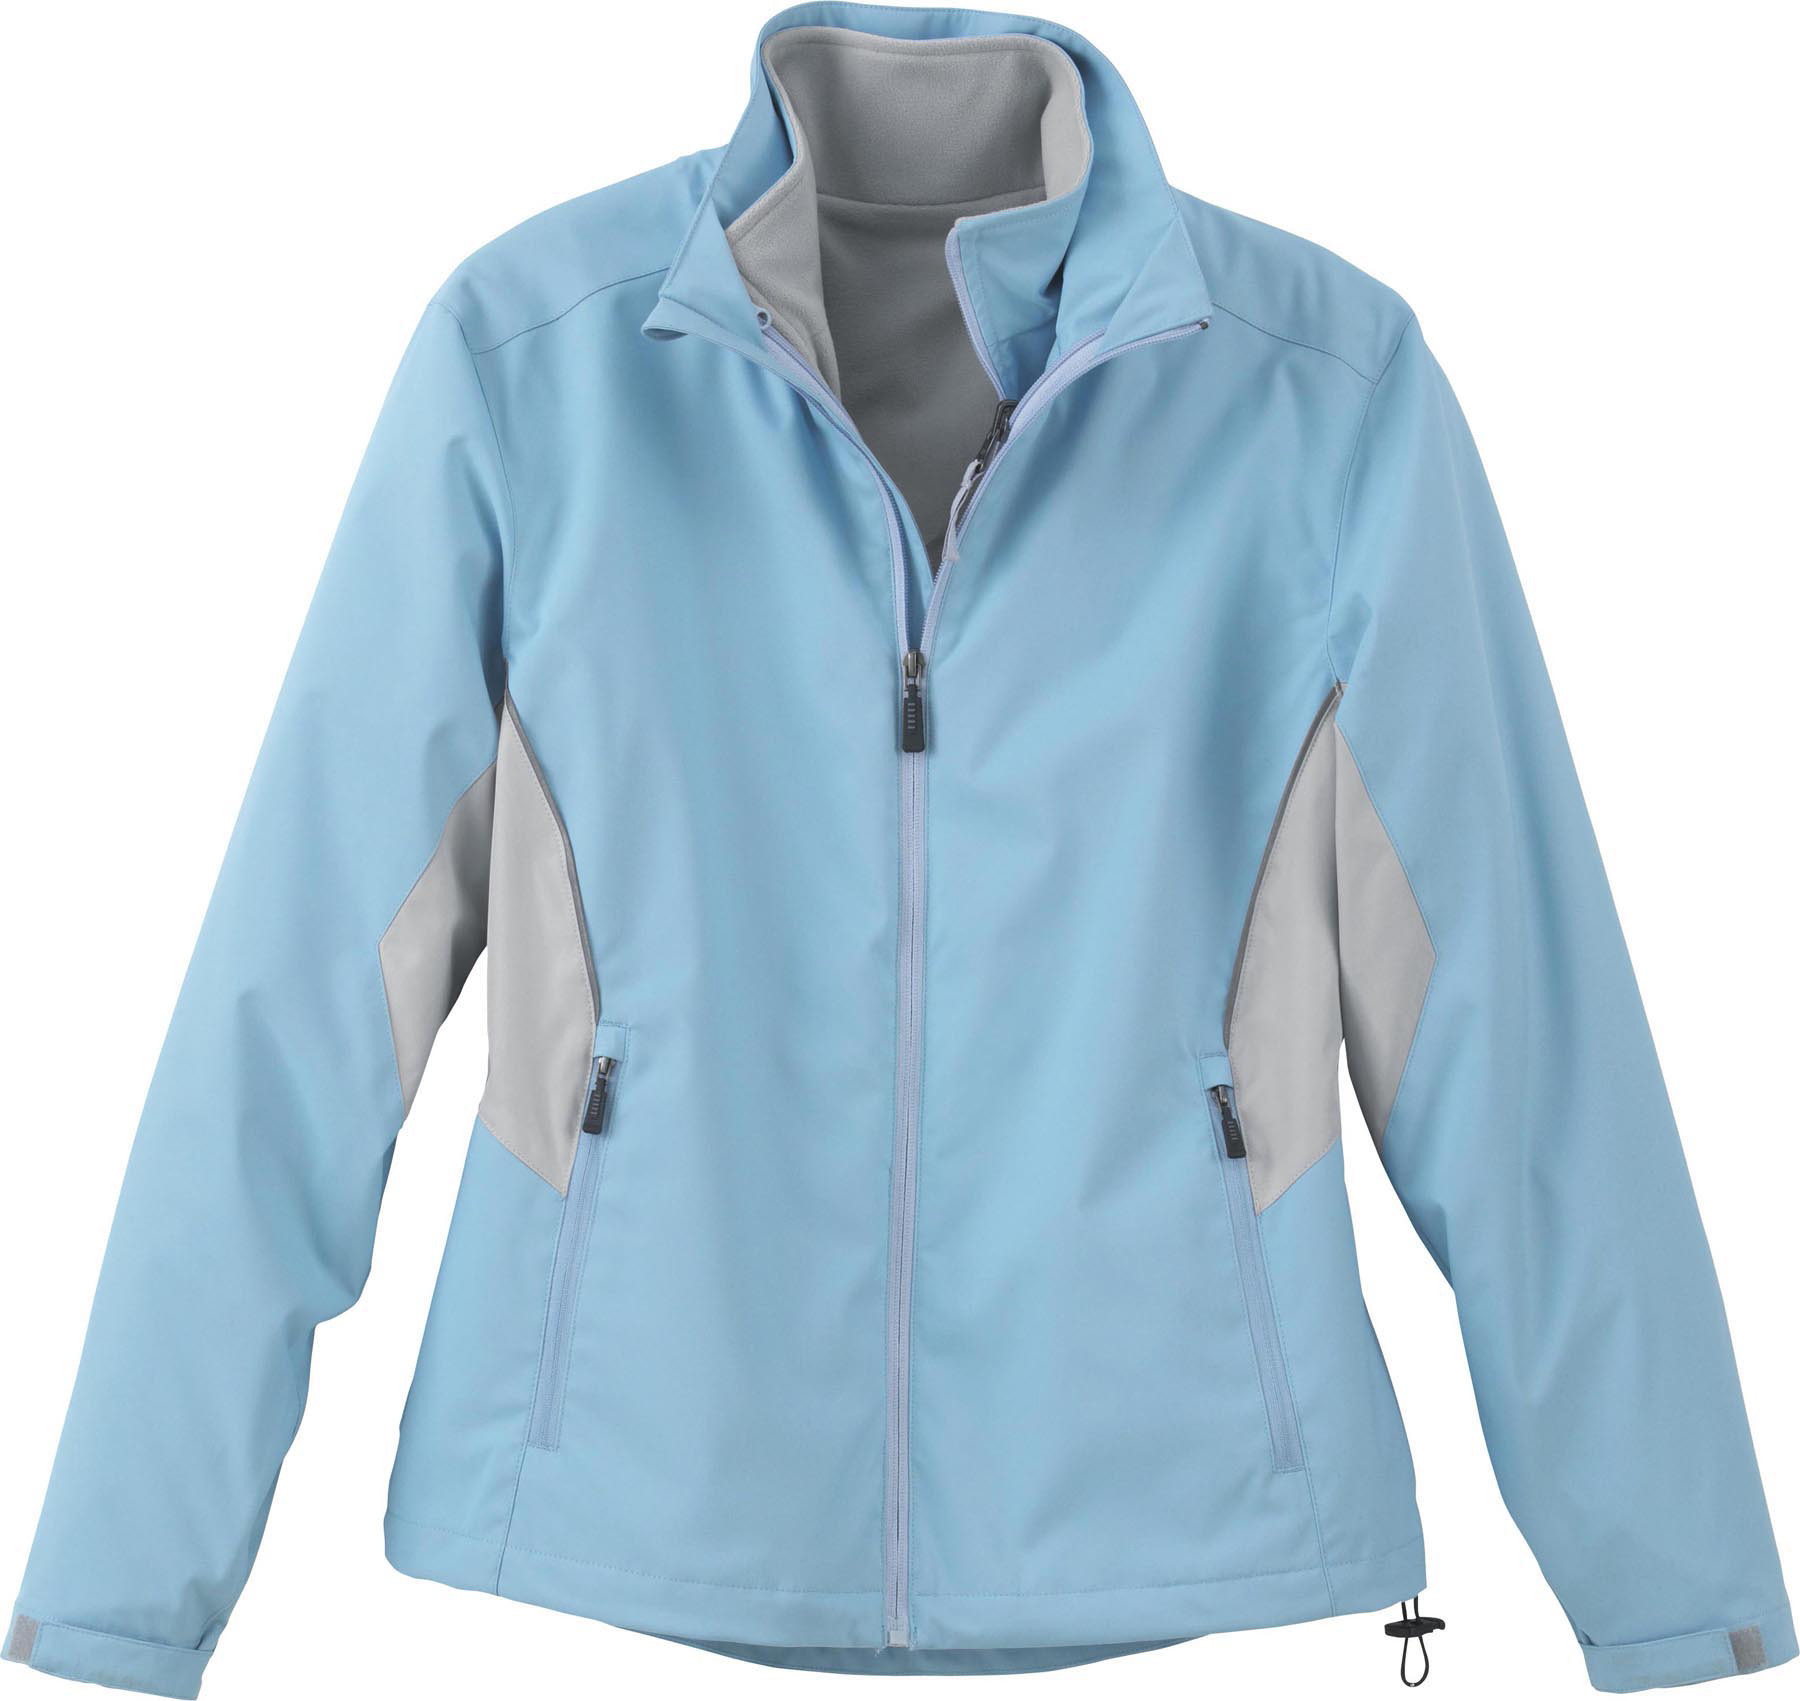 Ash City e.c.o Outerwear 78065 - Ladies' Recycled Polyester ...